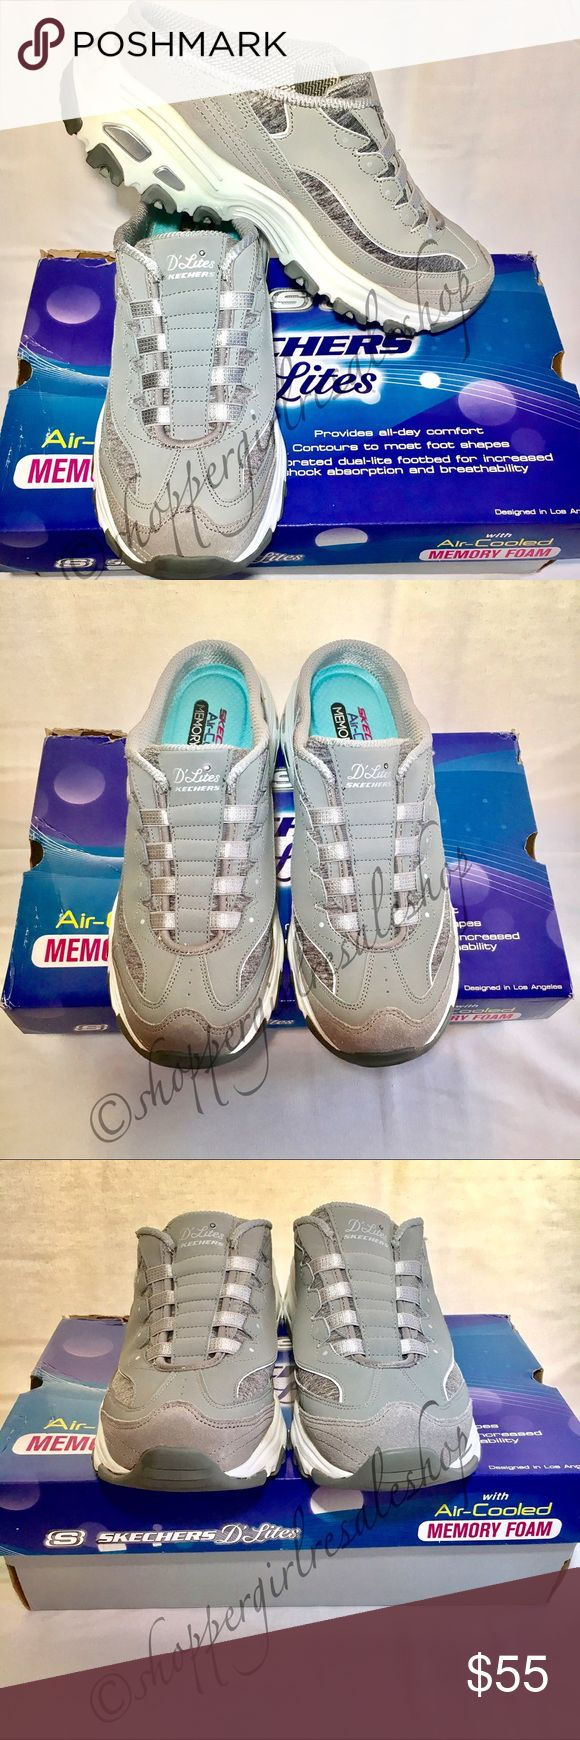 🎉🔥JUST IN!!🔥🎉 Gray SKECHERS D'LITES Sneakers👟 ✨LIKE NEW✨ Women's Gray and White SKECHERS D'LITES Slide-In Sneakers, Air-Cooled Memory Foam. Super cute and sporty. Excellent condition, no damage. Practically new, only worn on carpet.    ~Thanks for shopping by 😉 and taking a look. ❗️**Please N🚫 Trades, N🚫 Holds, N🚫 Low Ball offers.** ❗️Thank you!**👜👗👠👛👟💄🛍 {Smoke-Free Home!} Skechers Shoes Sneakers